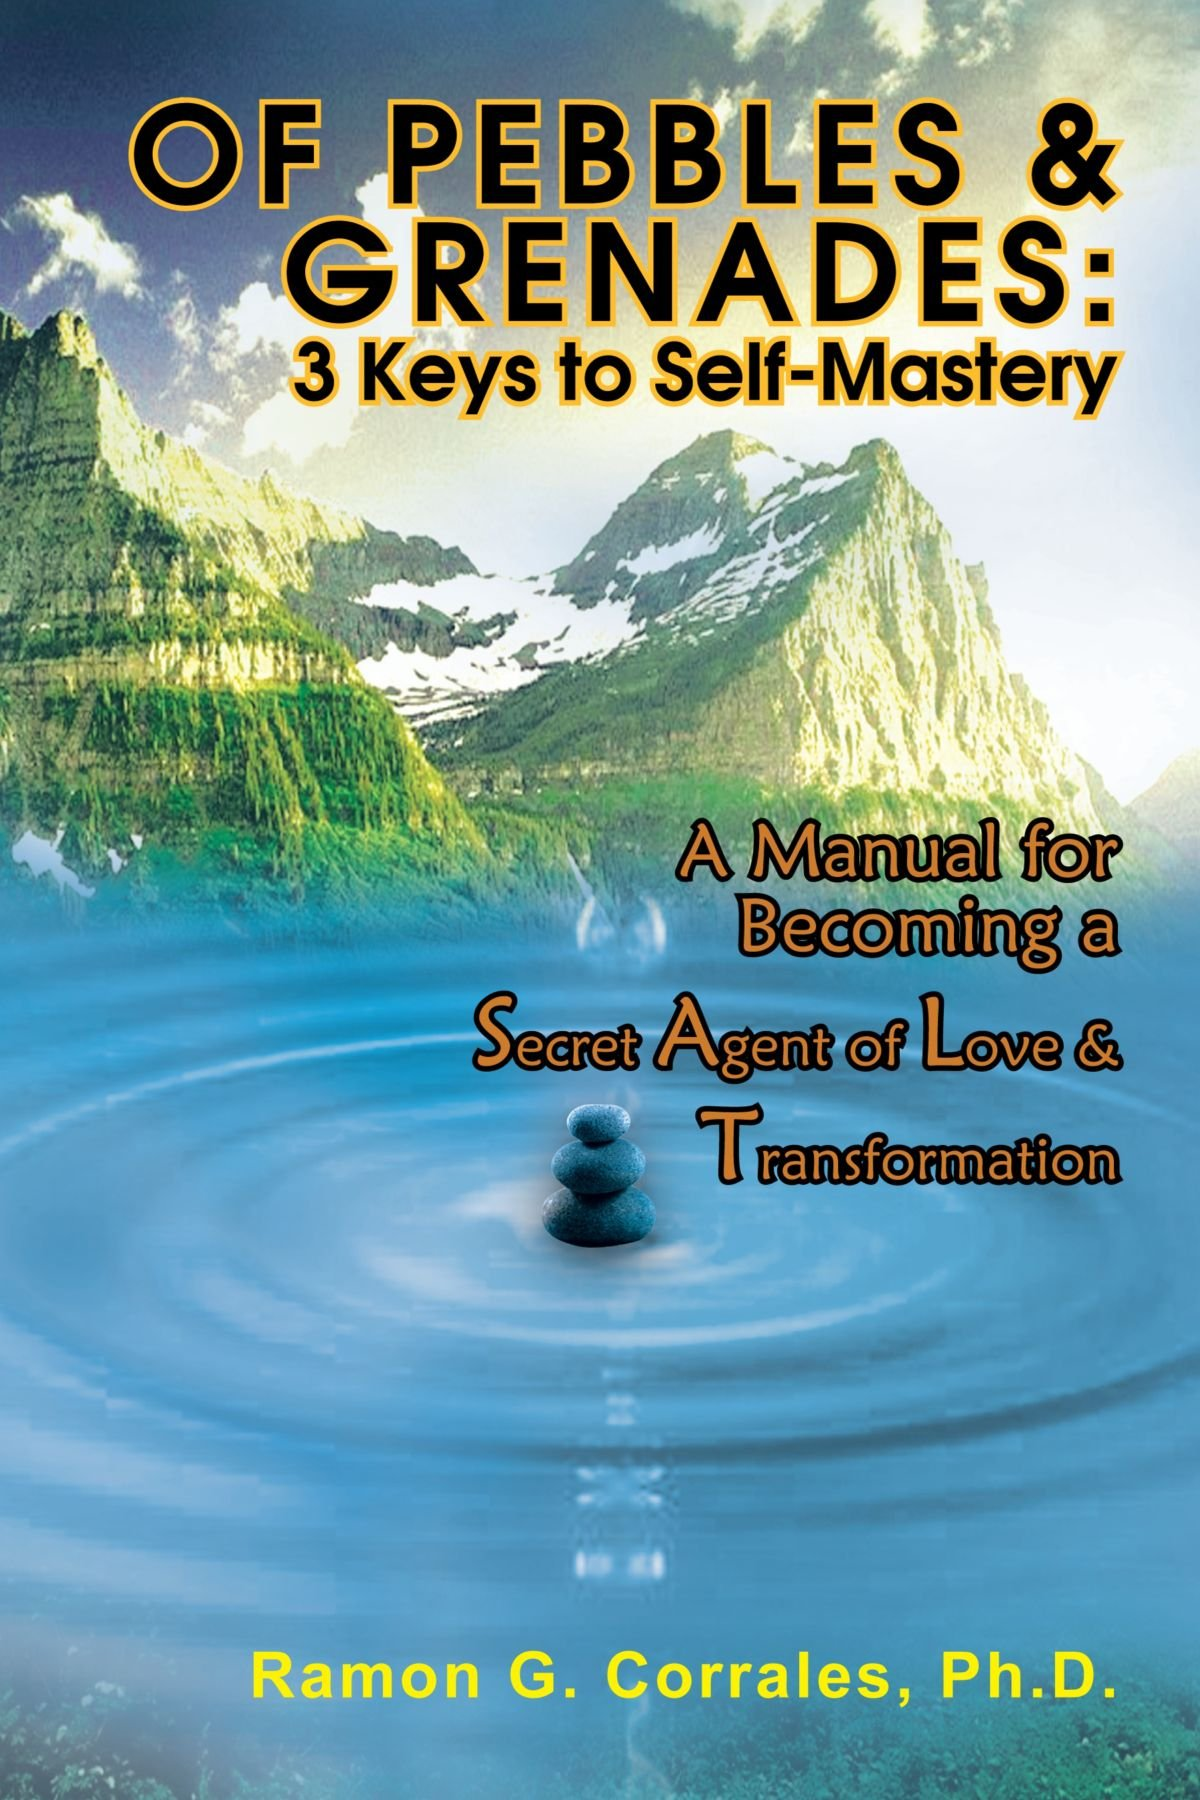 Download Of Pebbles & Grenades: 3 Keys To Self-Mastery: A Manual for Becoming a Secret Agent of Love & Transformation pdf